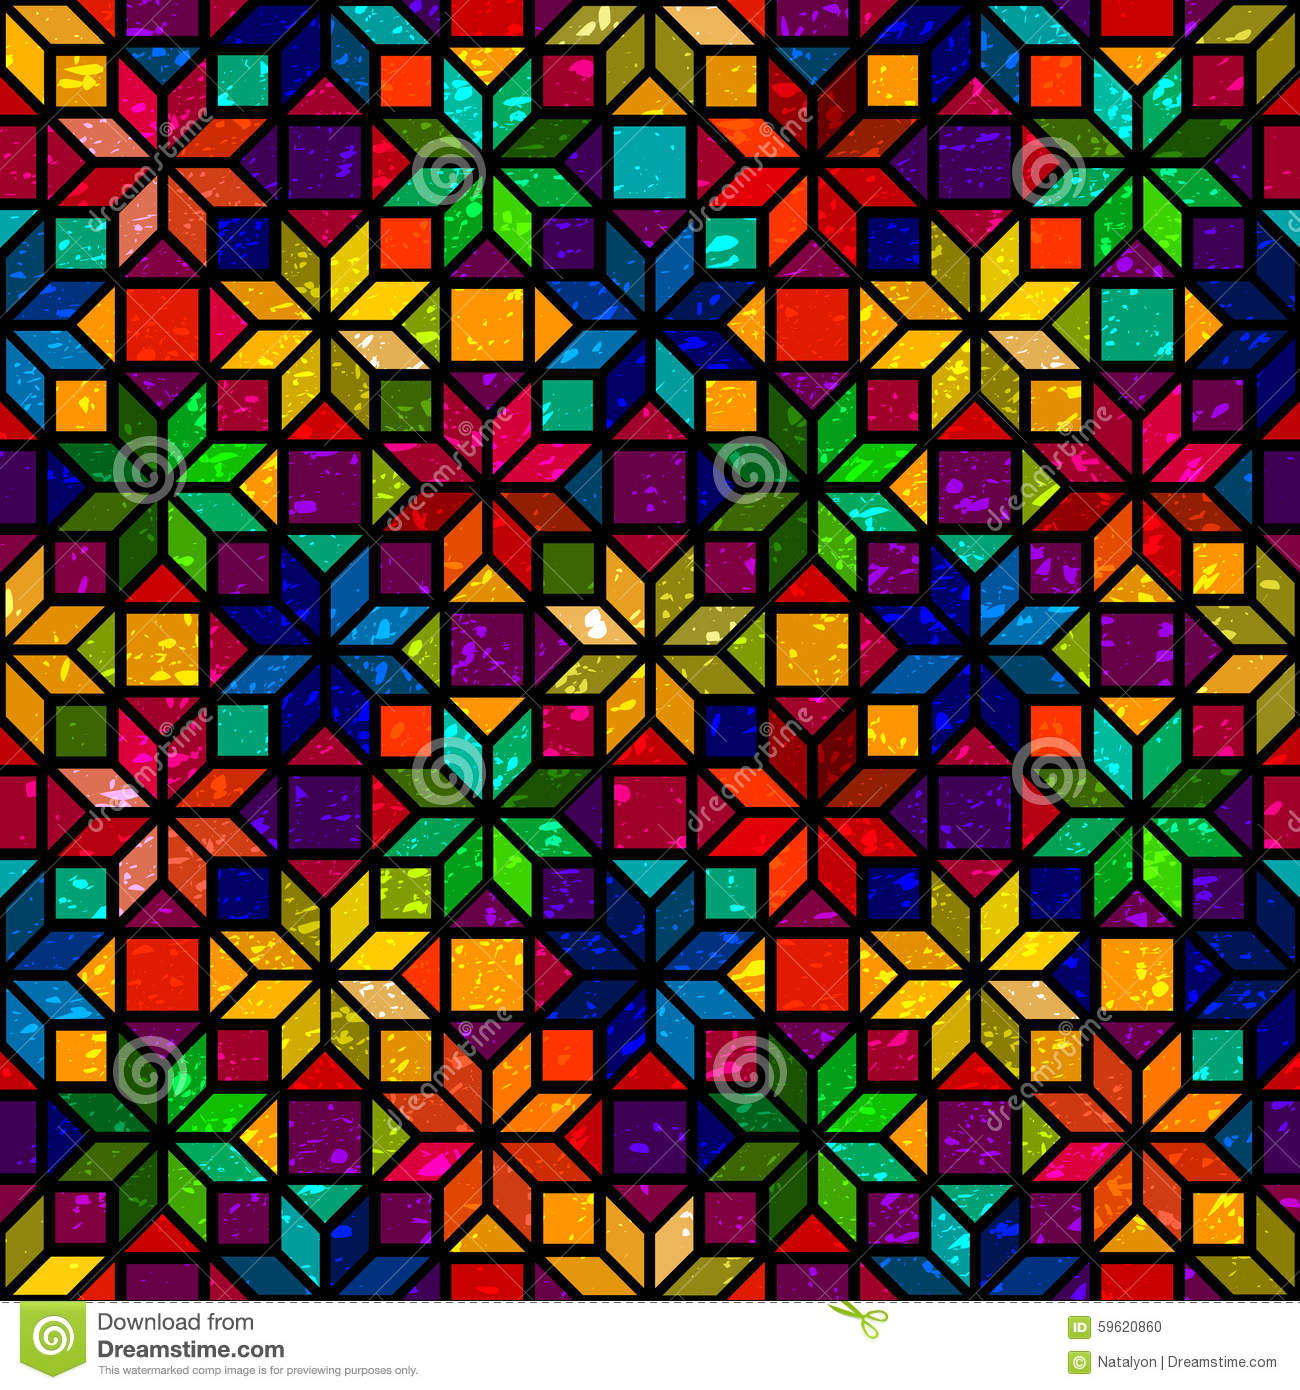 Star Shape Colorful Geometric Stained Glass Seamless